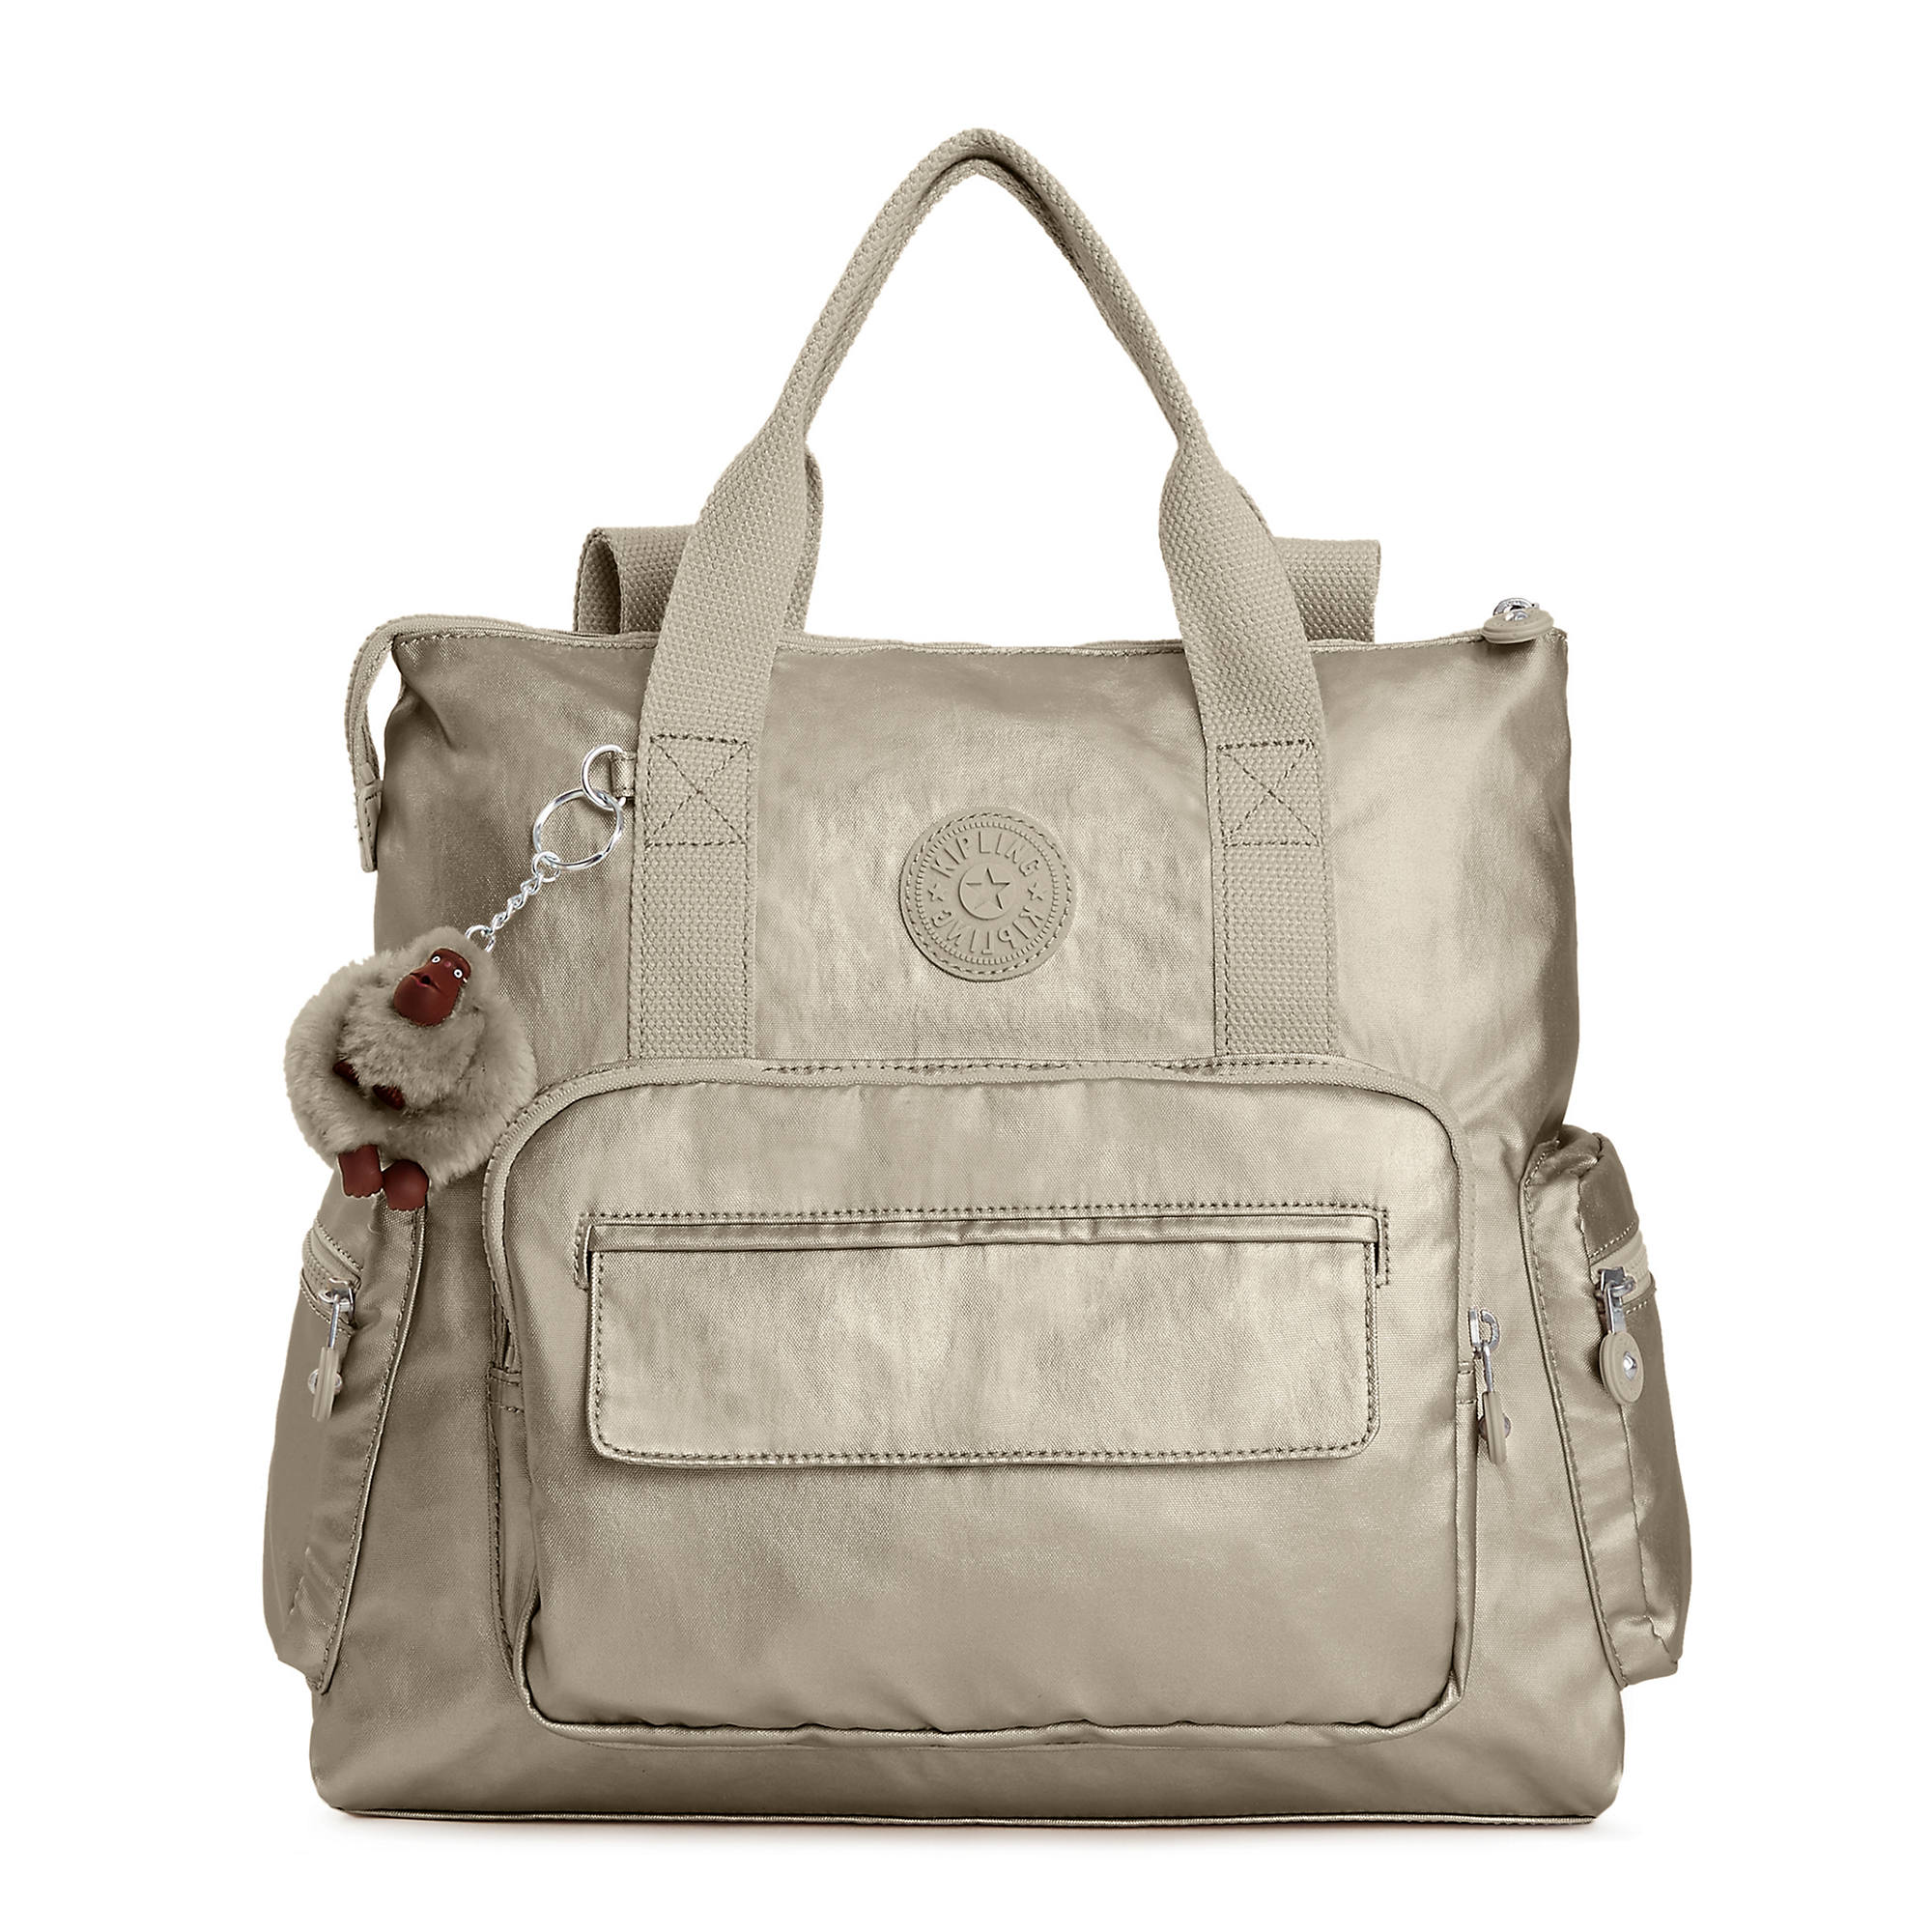 Alvy 2 In 1 Convertible Metallic Tote Bag Backpack Pewter Large